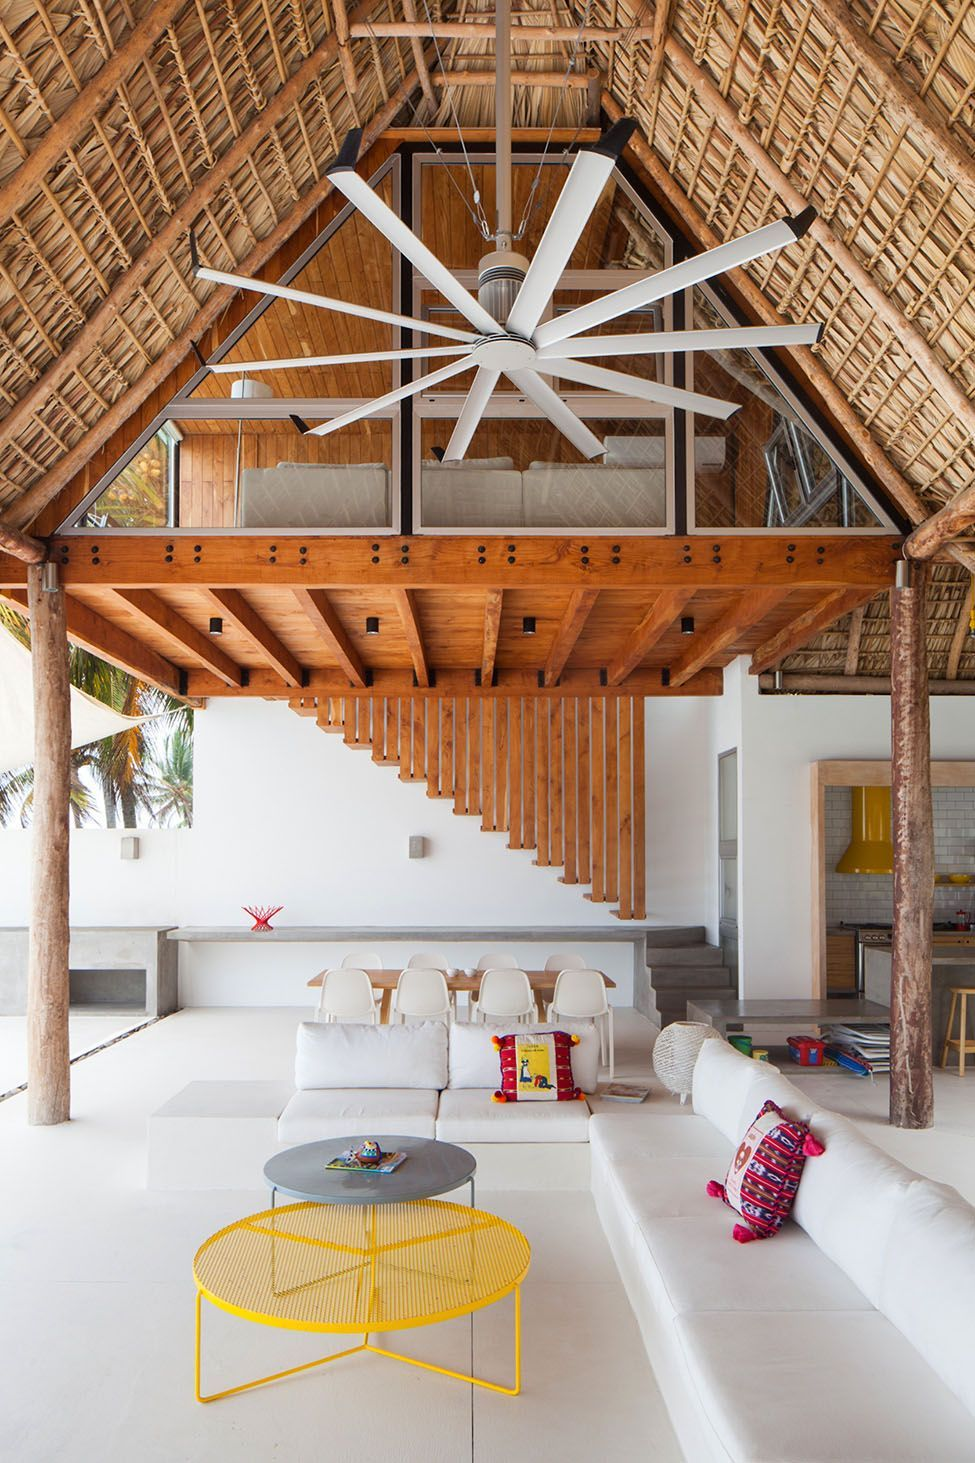 Modernes bungalow innenarchitektur wohnzimmer modern beach house interior design  beach bungalow casa azul in san